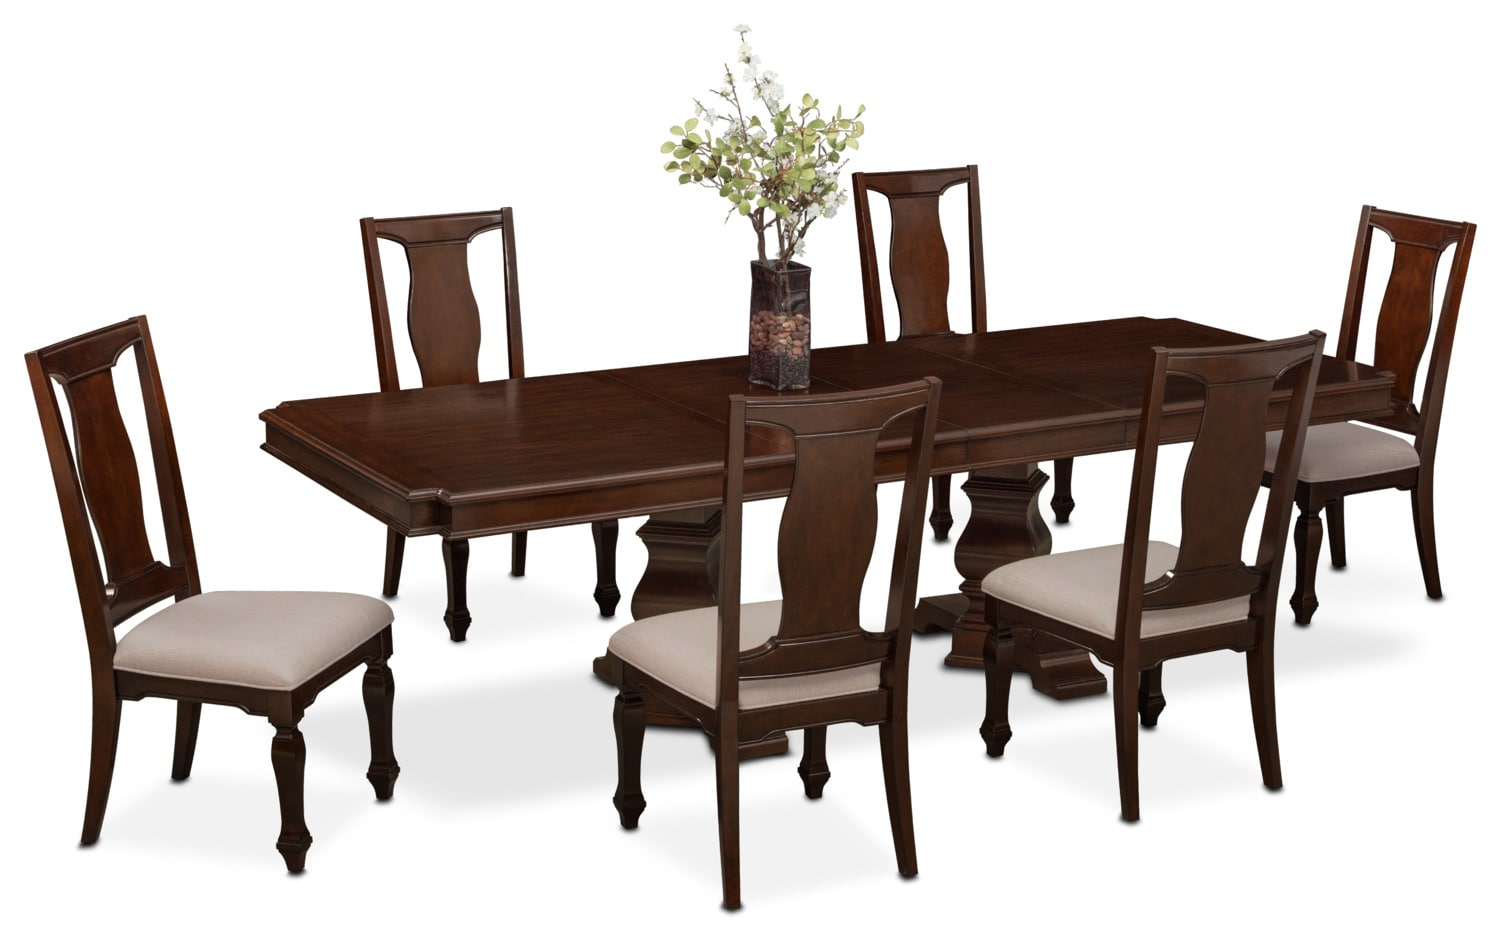 Dining Room Furniture - Vienna Dining Table and 6 Side Chairs - Merlot